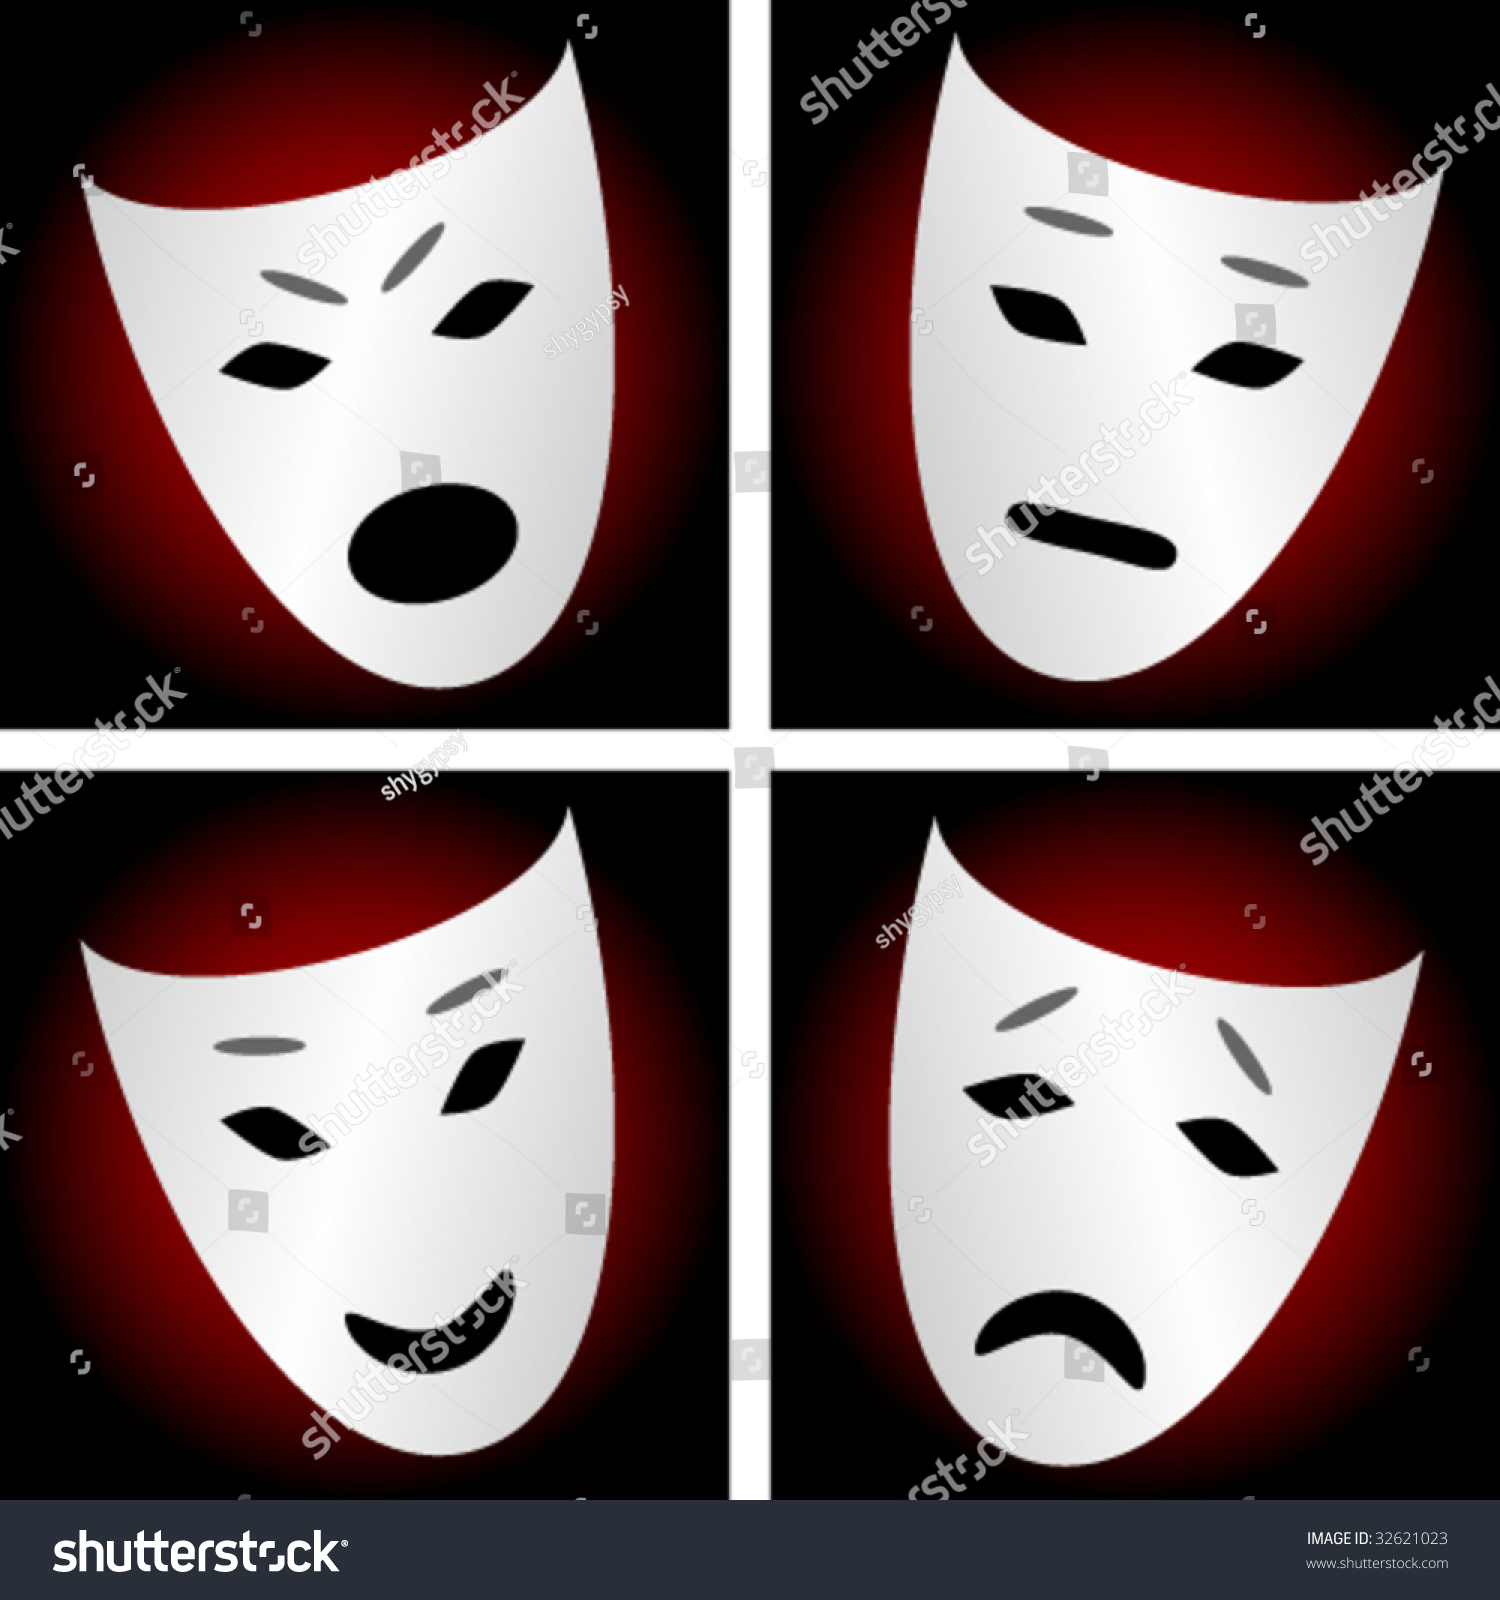 Stock Vector Masks Depicting